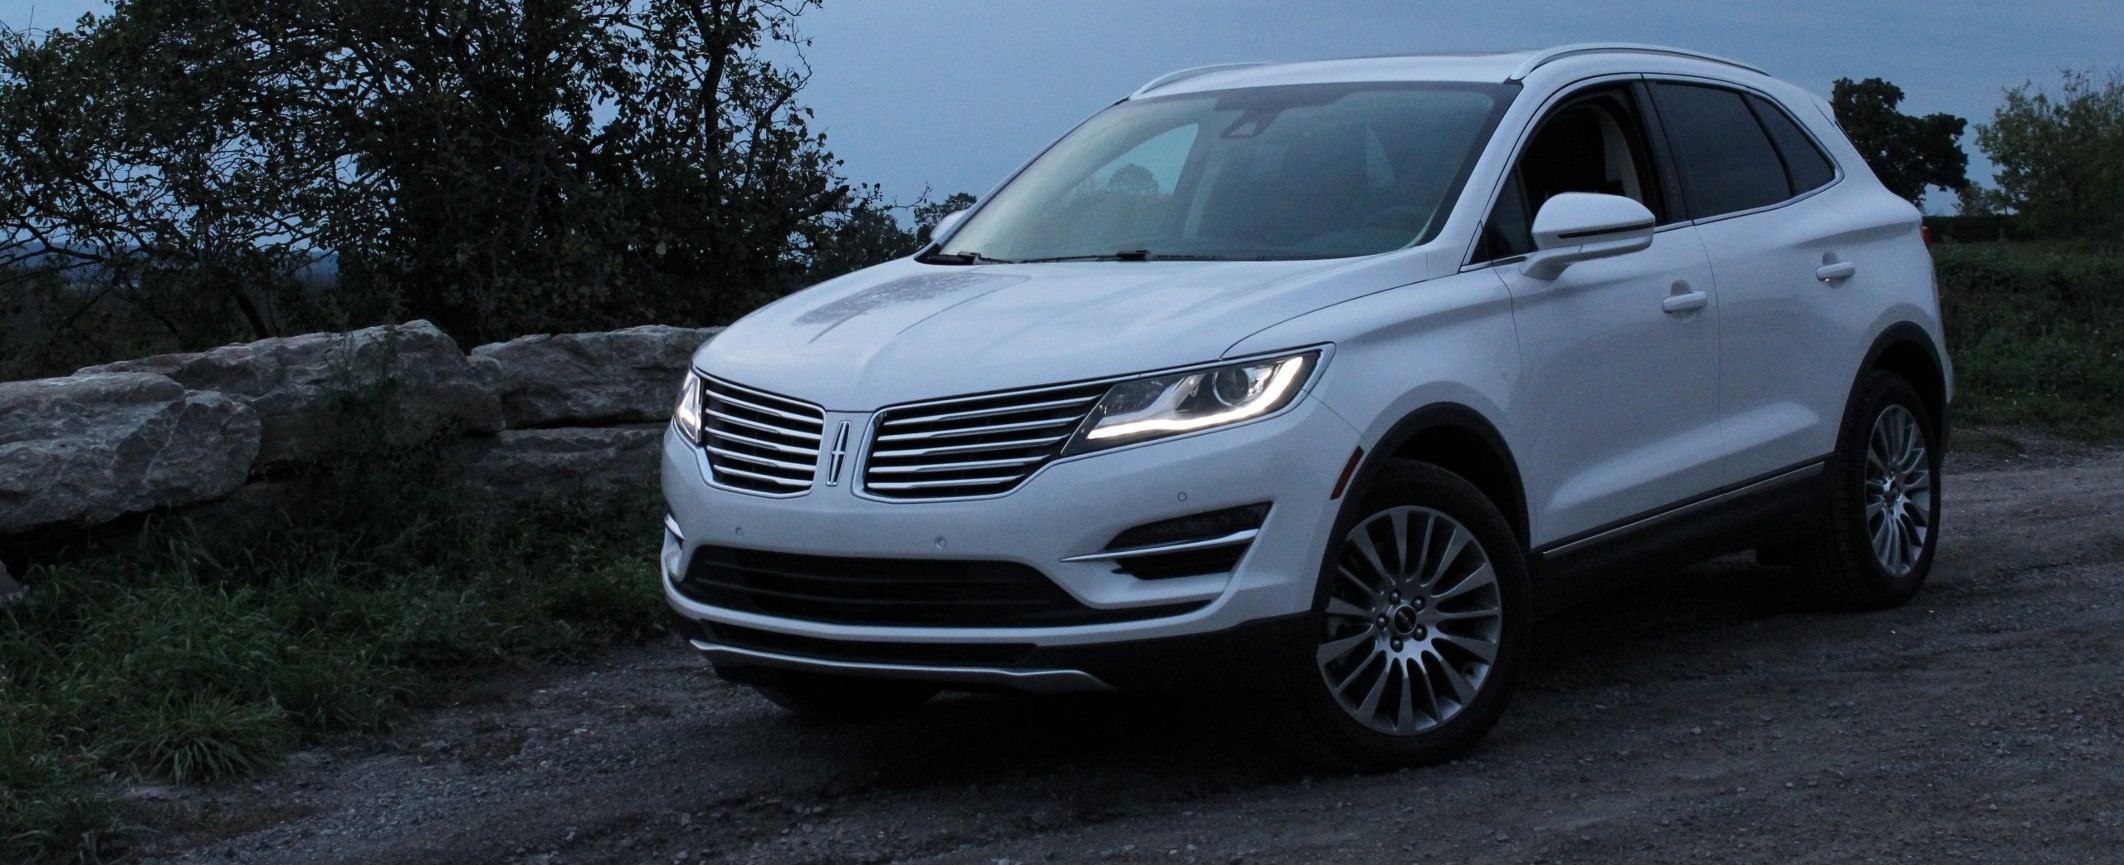 2016 Lincoln MKC: Smaller Utility, Bigger Value